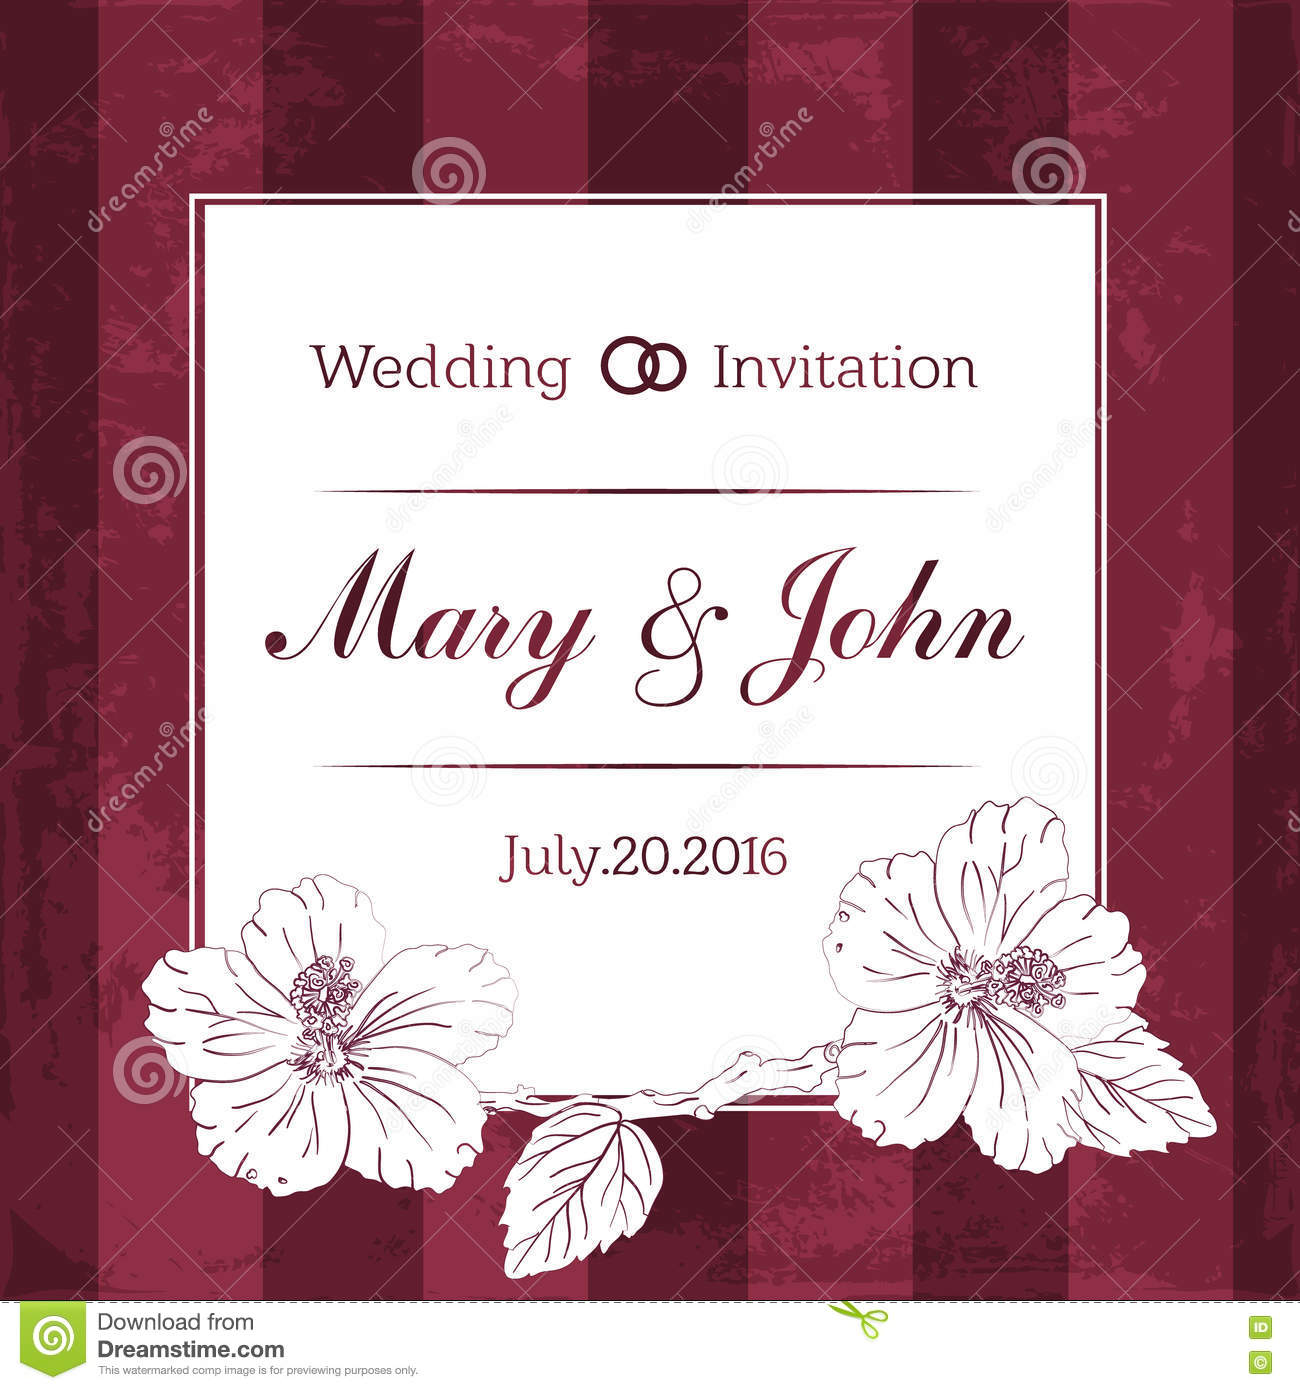 marriage design template with custom names in square frame flowers